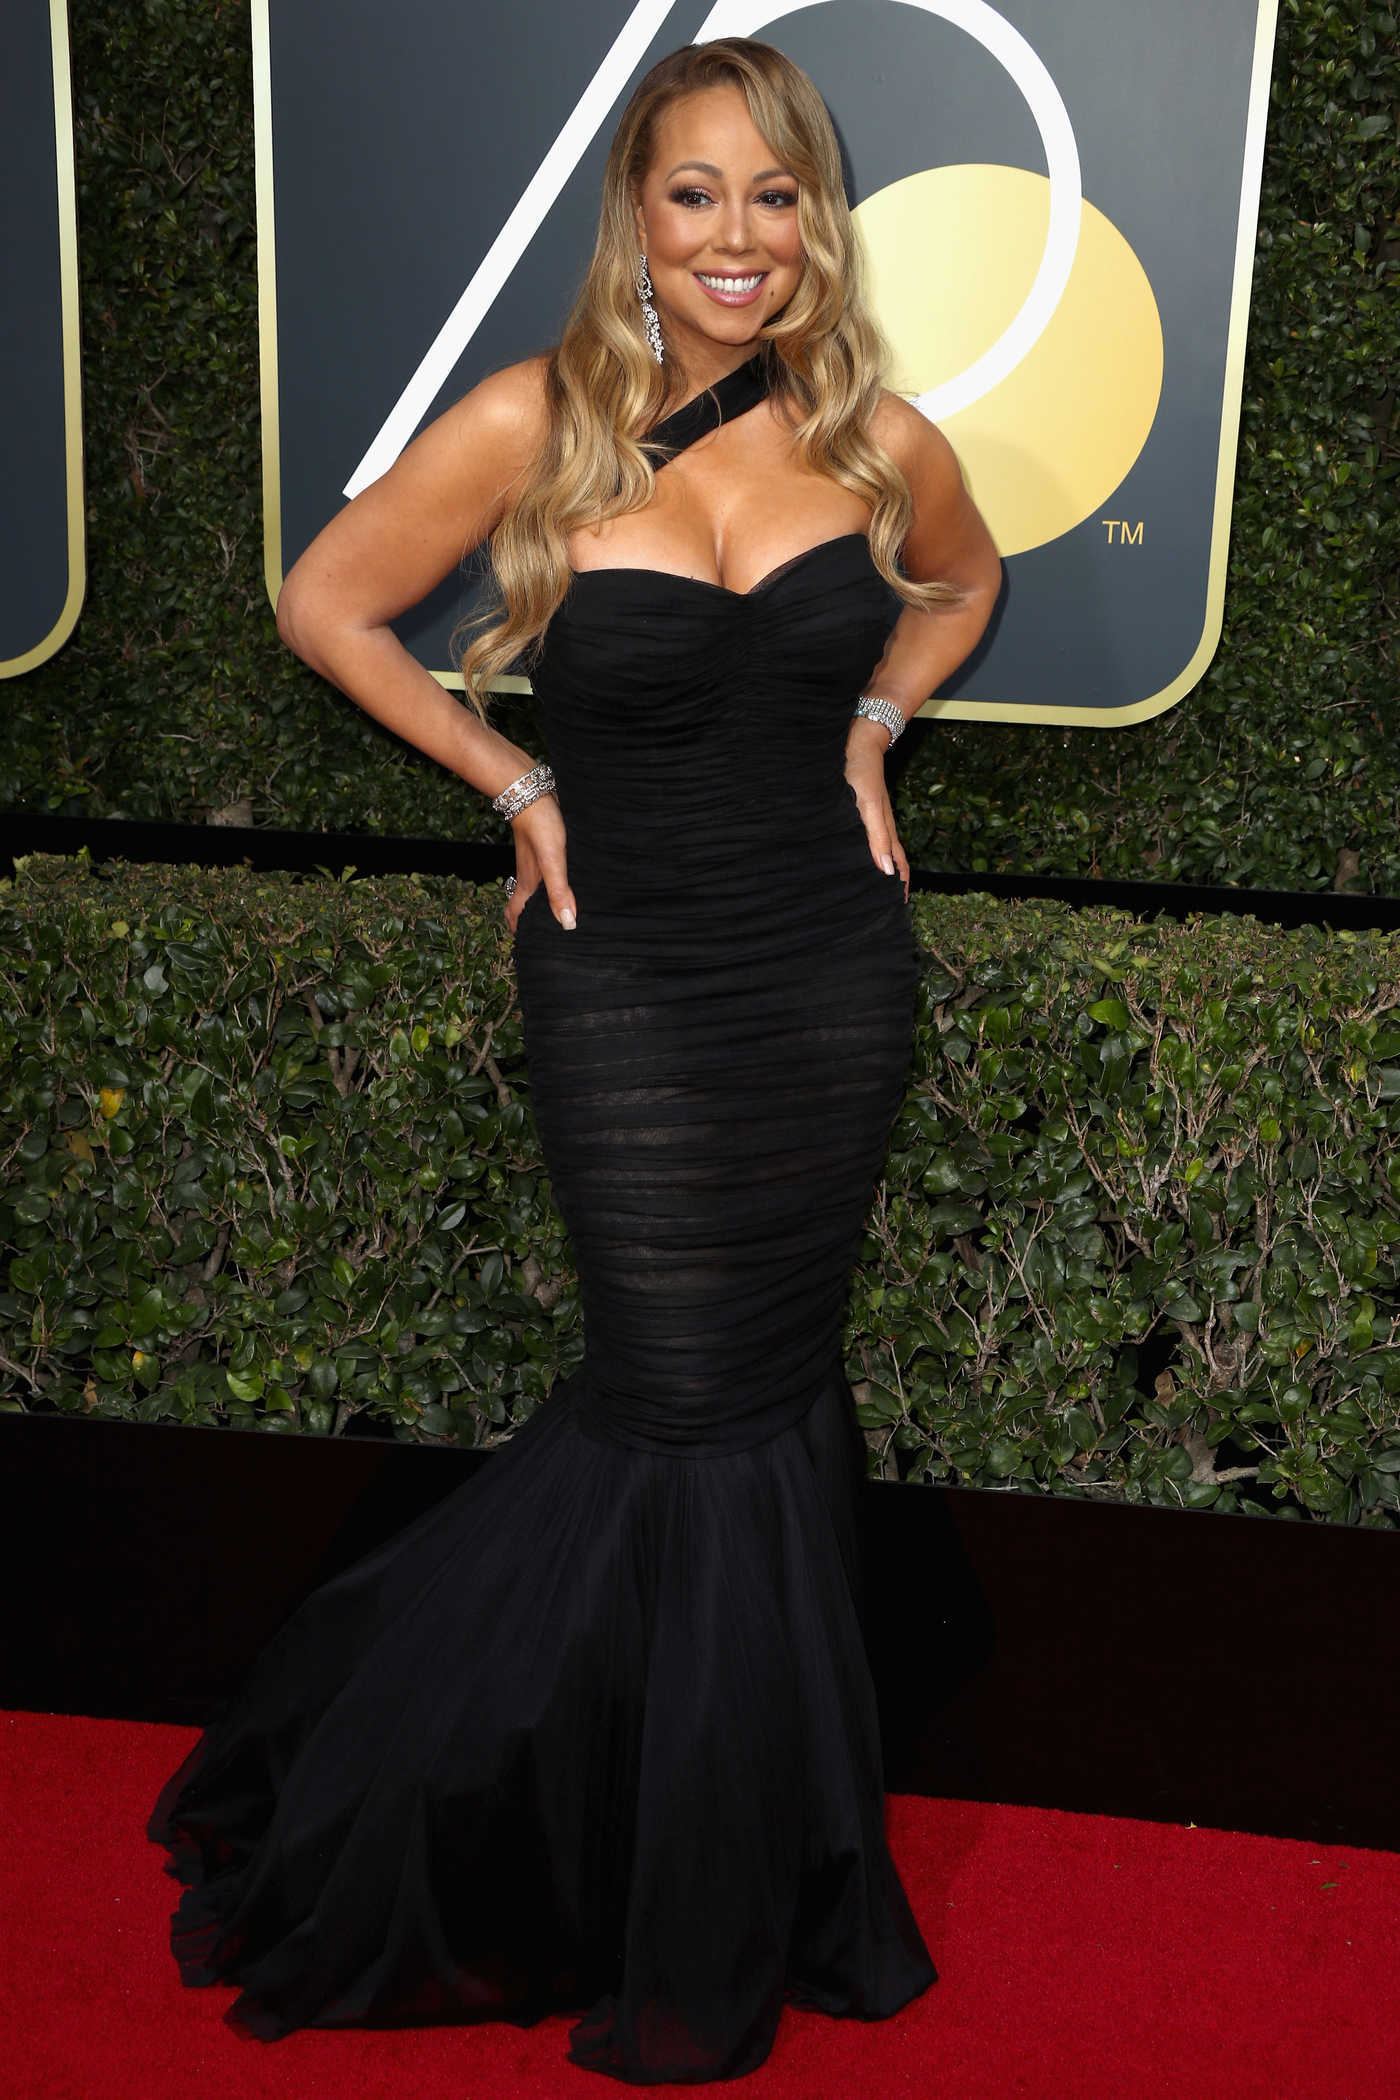 Mariah Carey at the 75th Annual Golden Globe Awards in Beverly Hills 01/07/2018